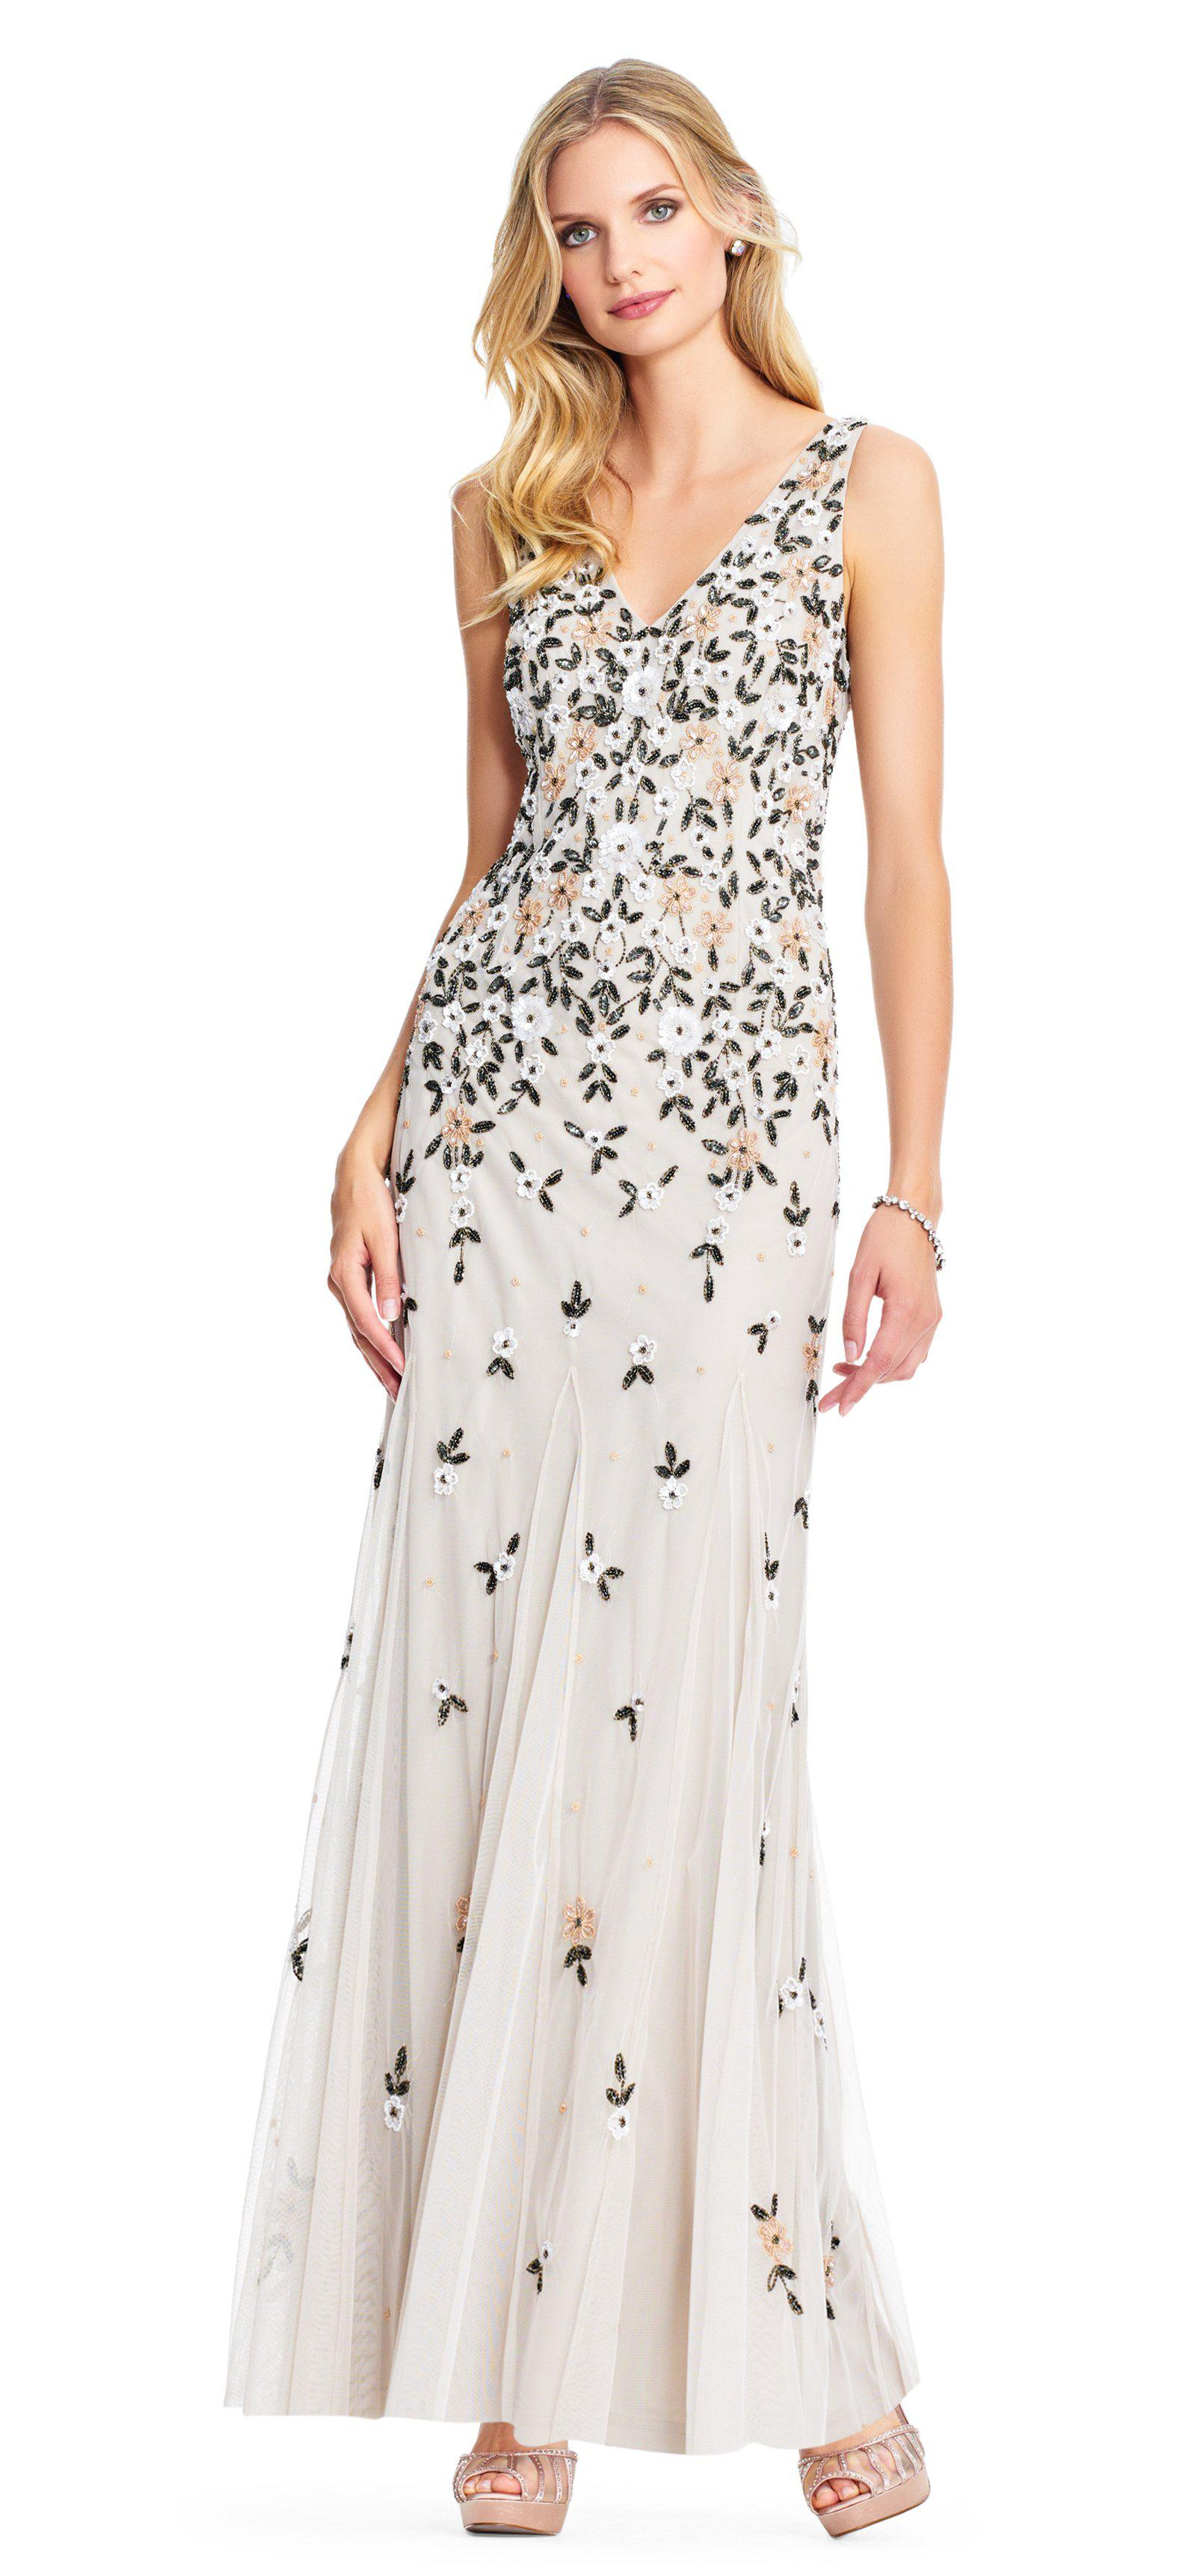 8f384a05877dc Adrianna Papell Ap1e203692 Beaded And Floral Applique Trumpet Dress ...